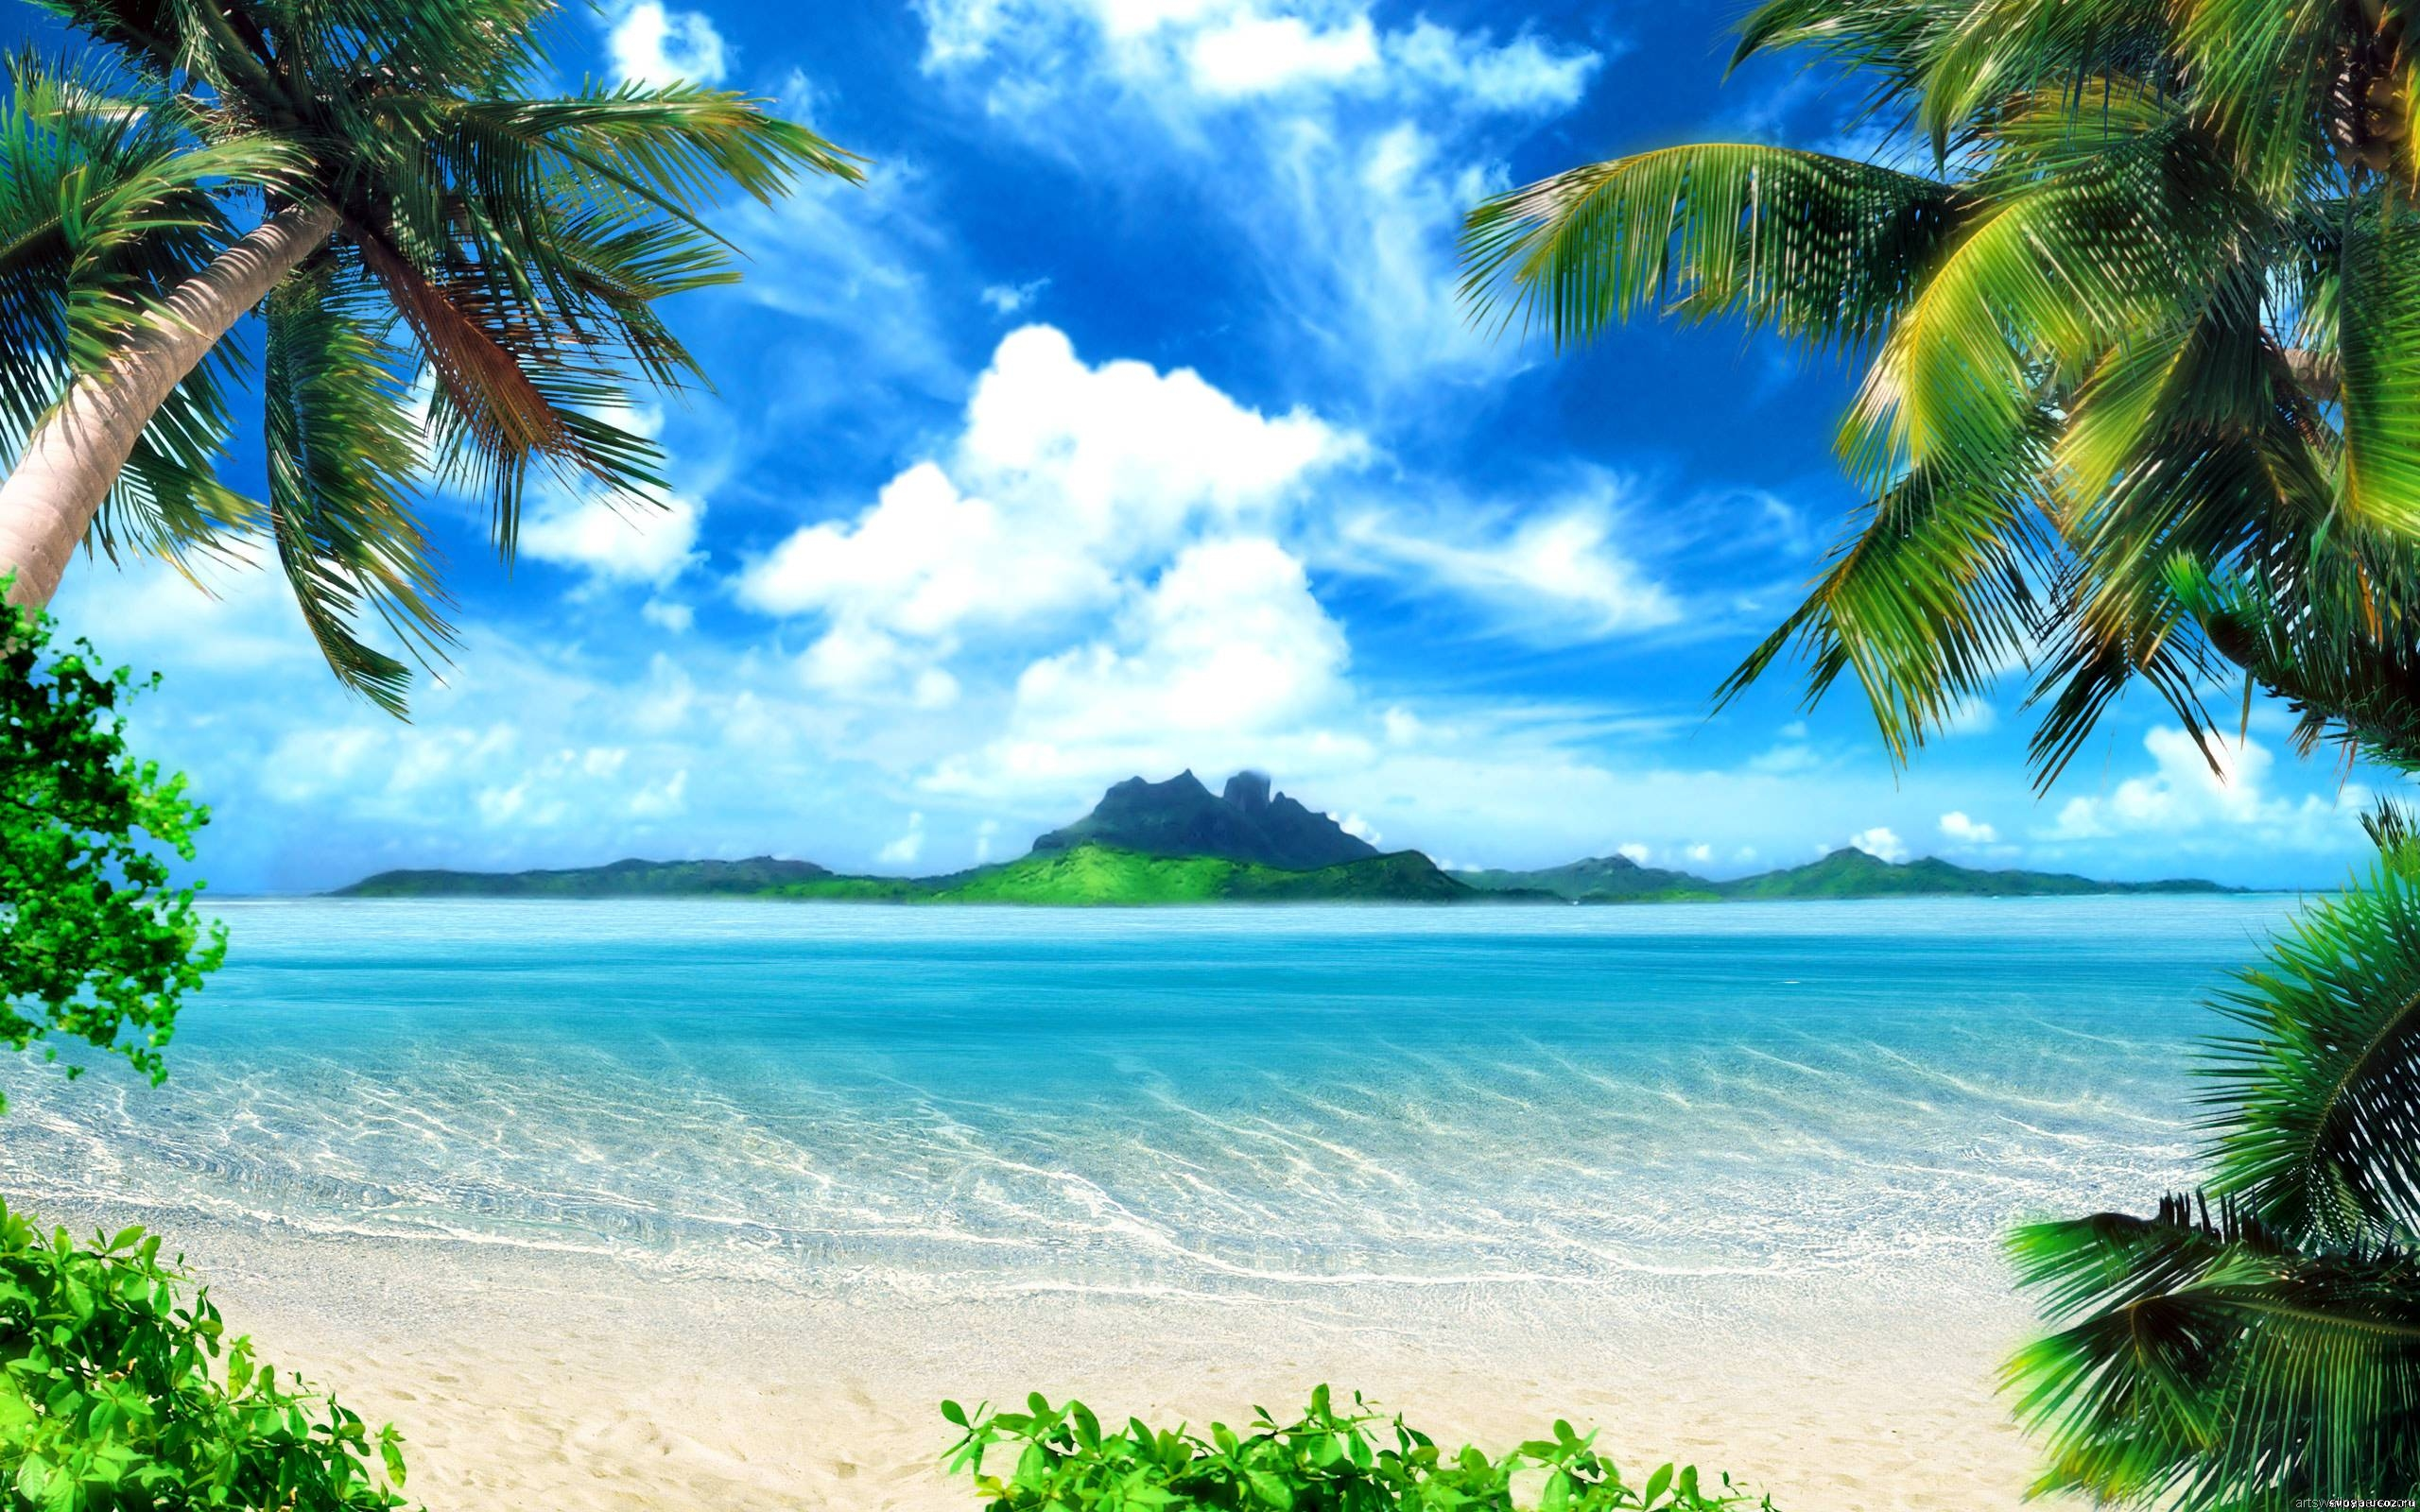 Sea Ocean Wallpaper HD Full HD 1080p Desktop Wallpaper Background 2560x1600